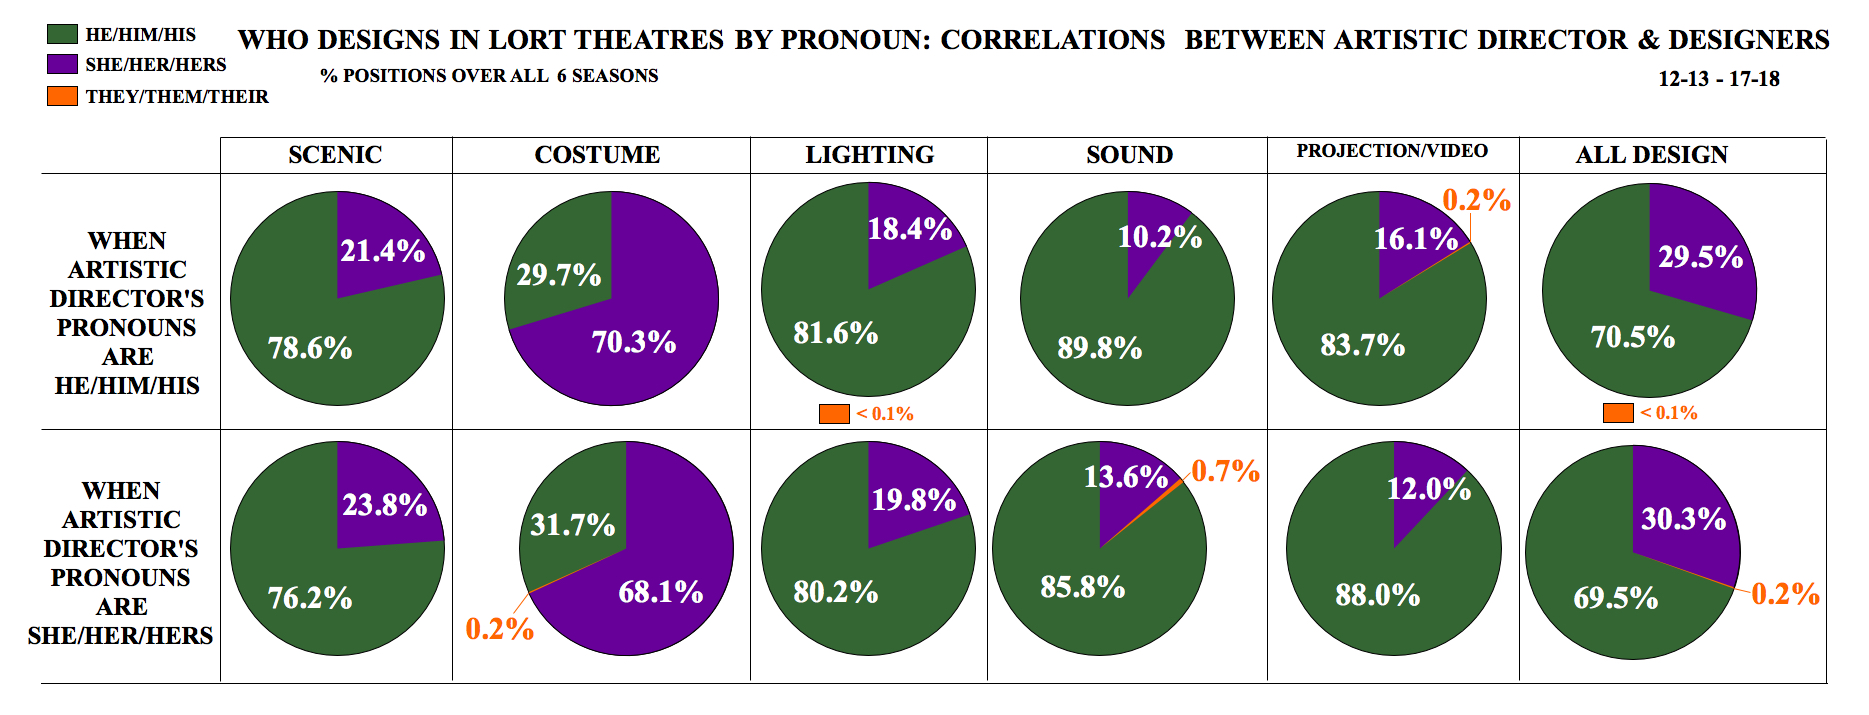 Who Designs in LORT Theatres by Pronoun: Correlations between Artistic Director & Designers